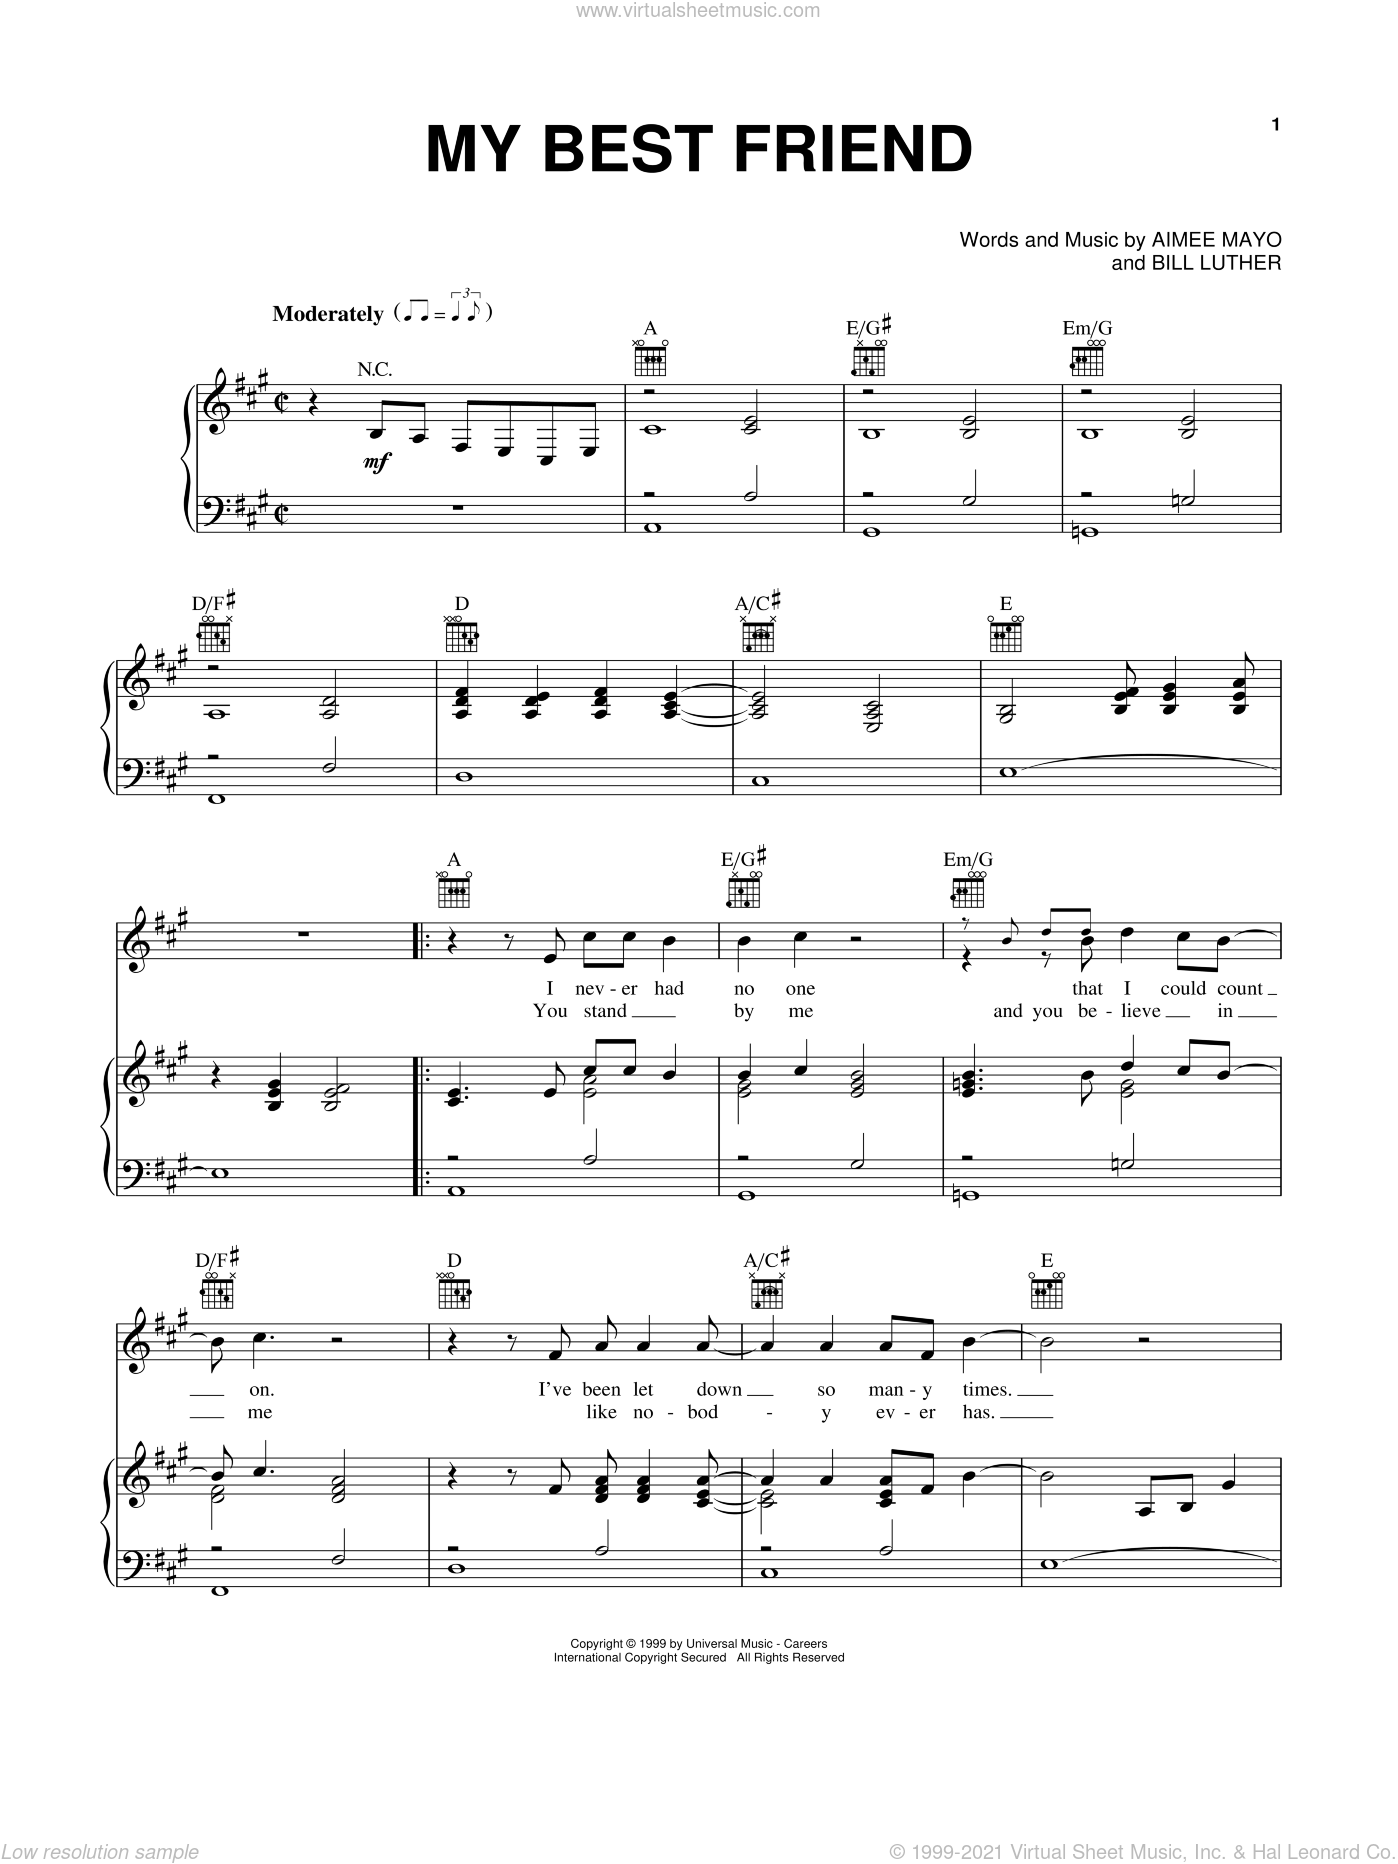 My Best Friend sheet music for voice, piano or guitar by Bill Luther